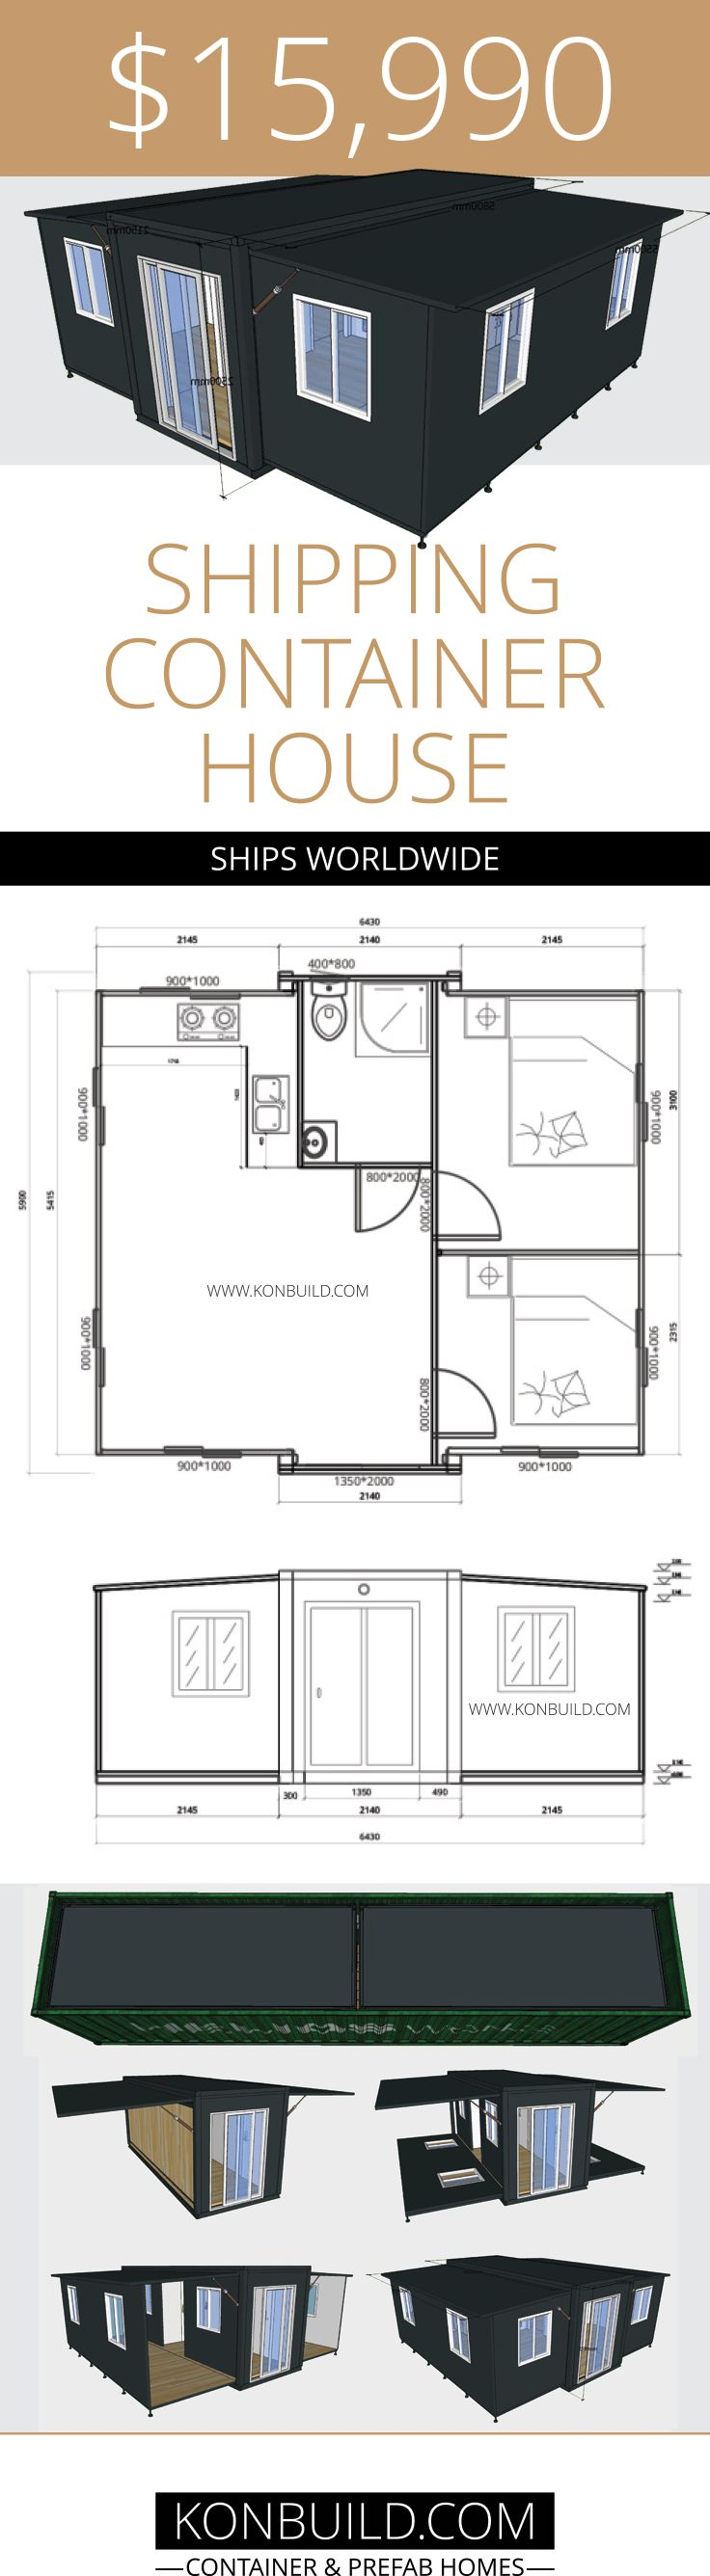 expandable shipping container home from china with floor plan 32 square metre in size